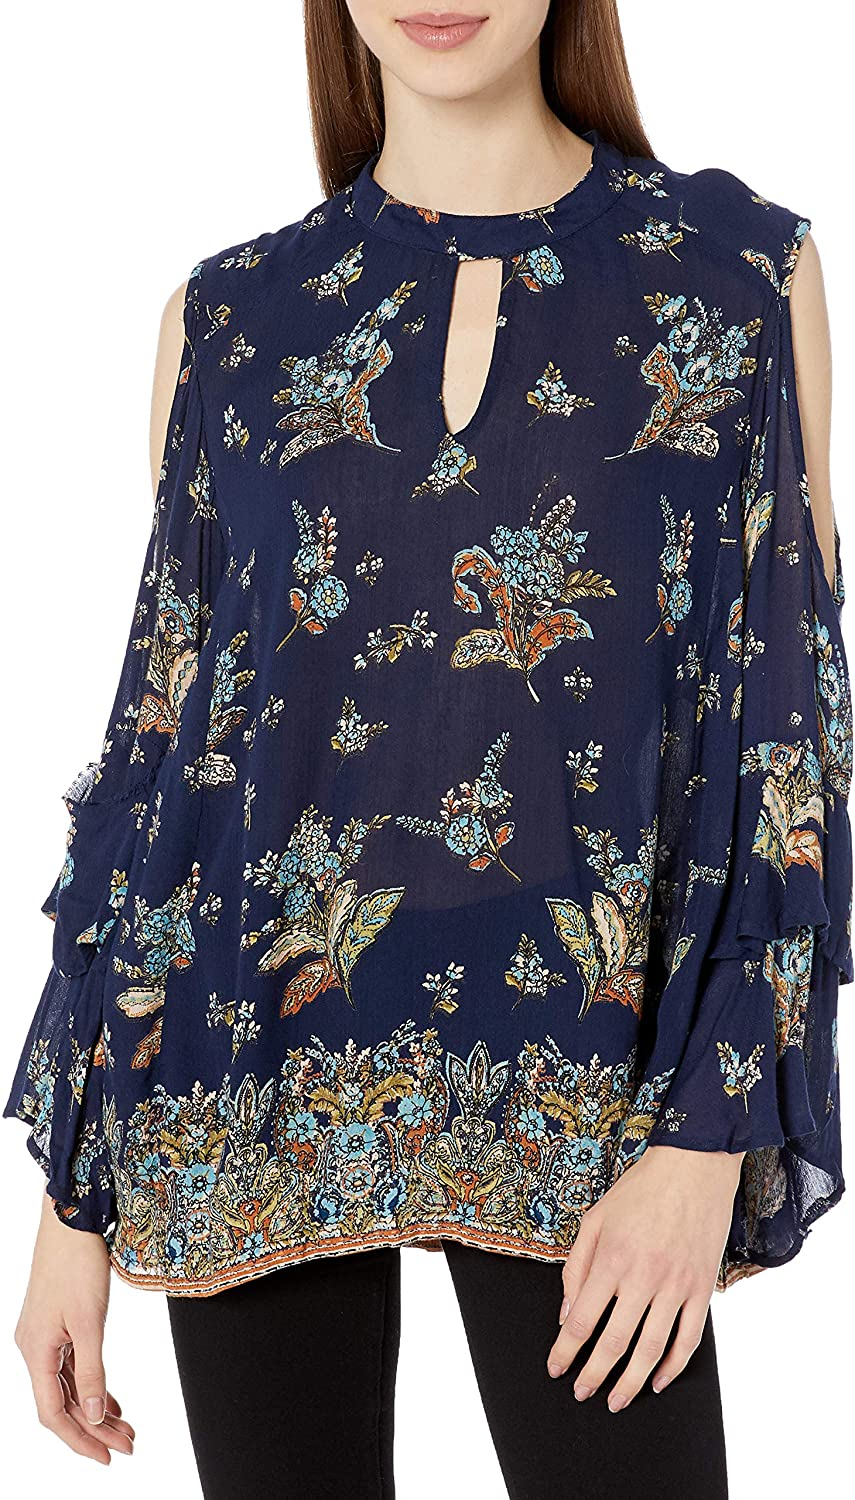 Angie Women's Long Navy Printed Keyhole Cold Shoulder Top